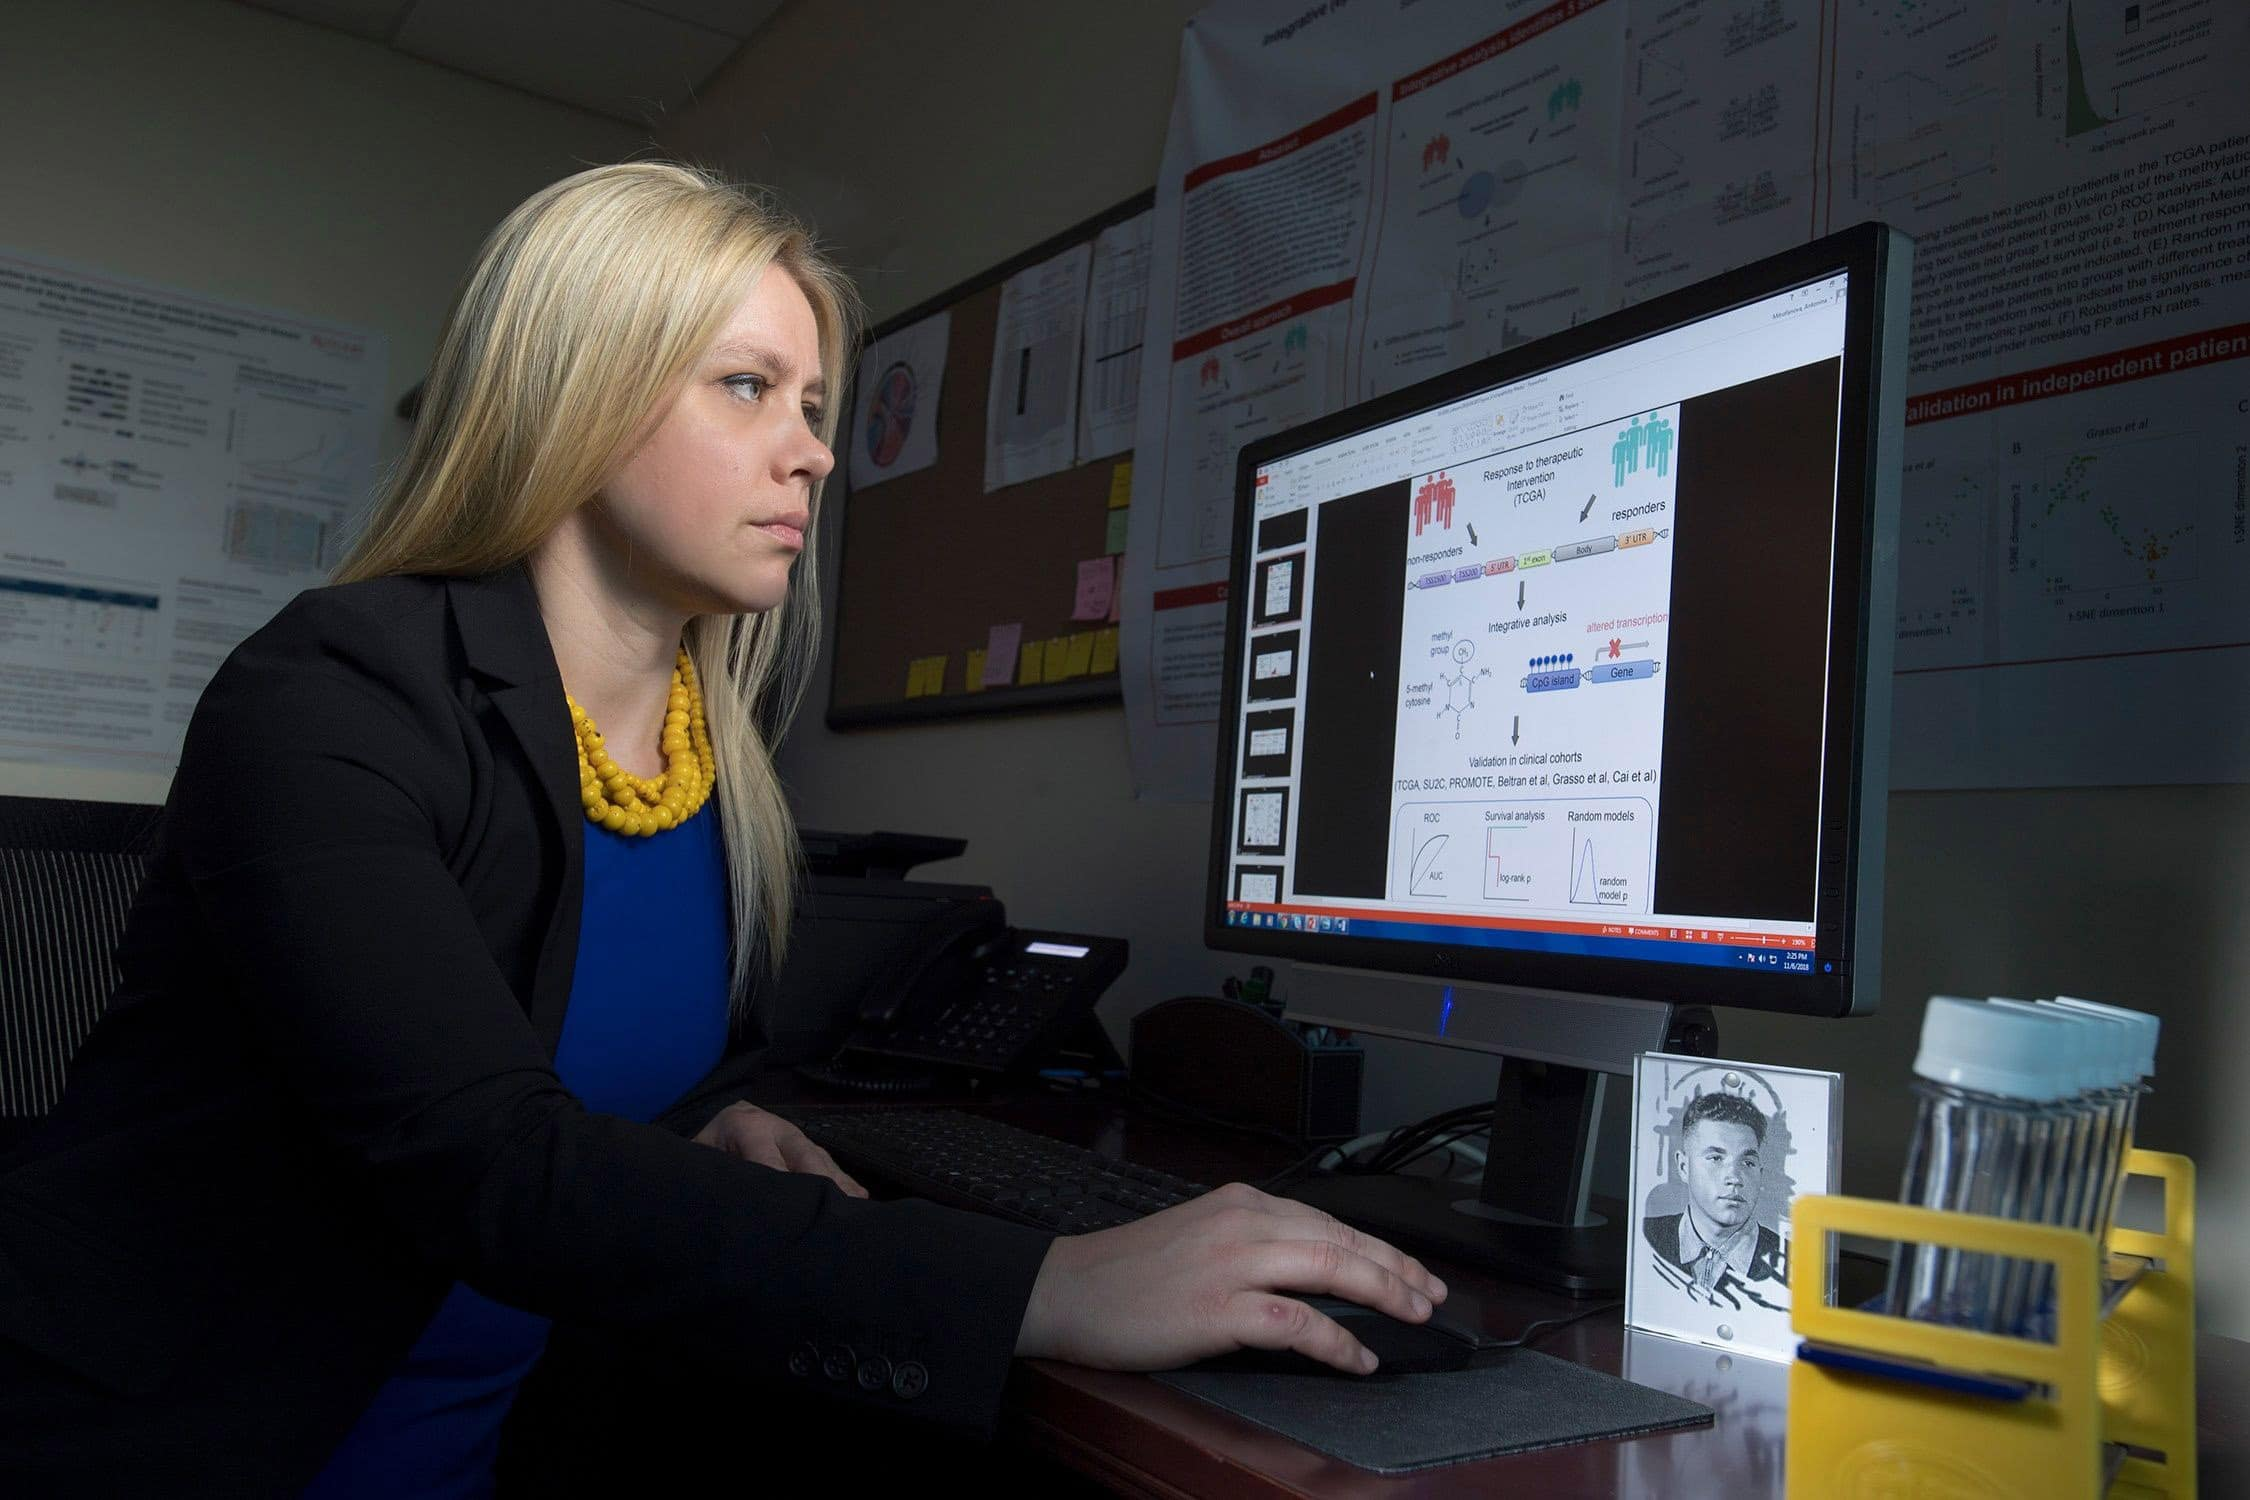 Assistant Professor Antonina Mitrovanova conducts health informatics research working with data in her computer lab.